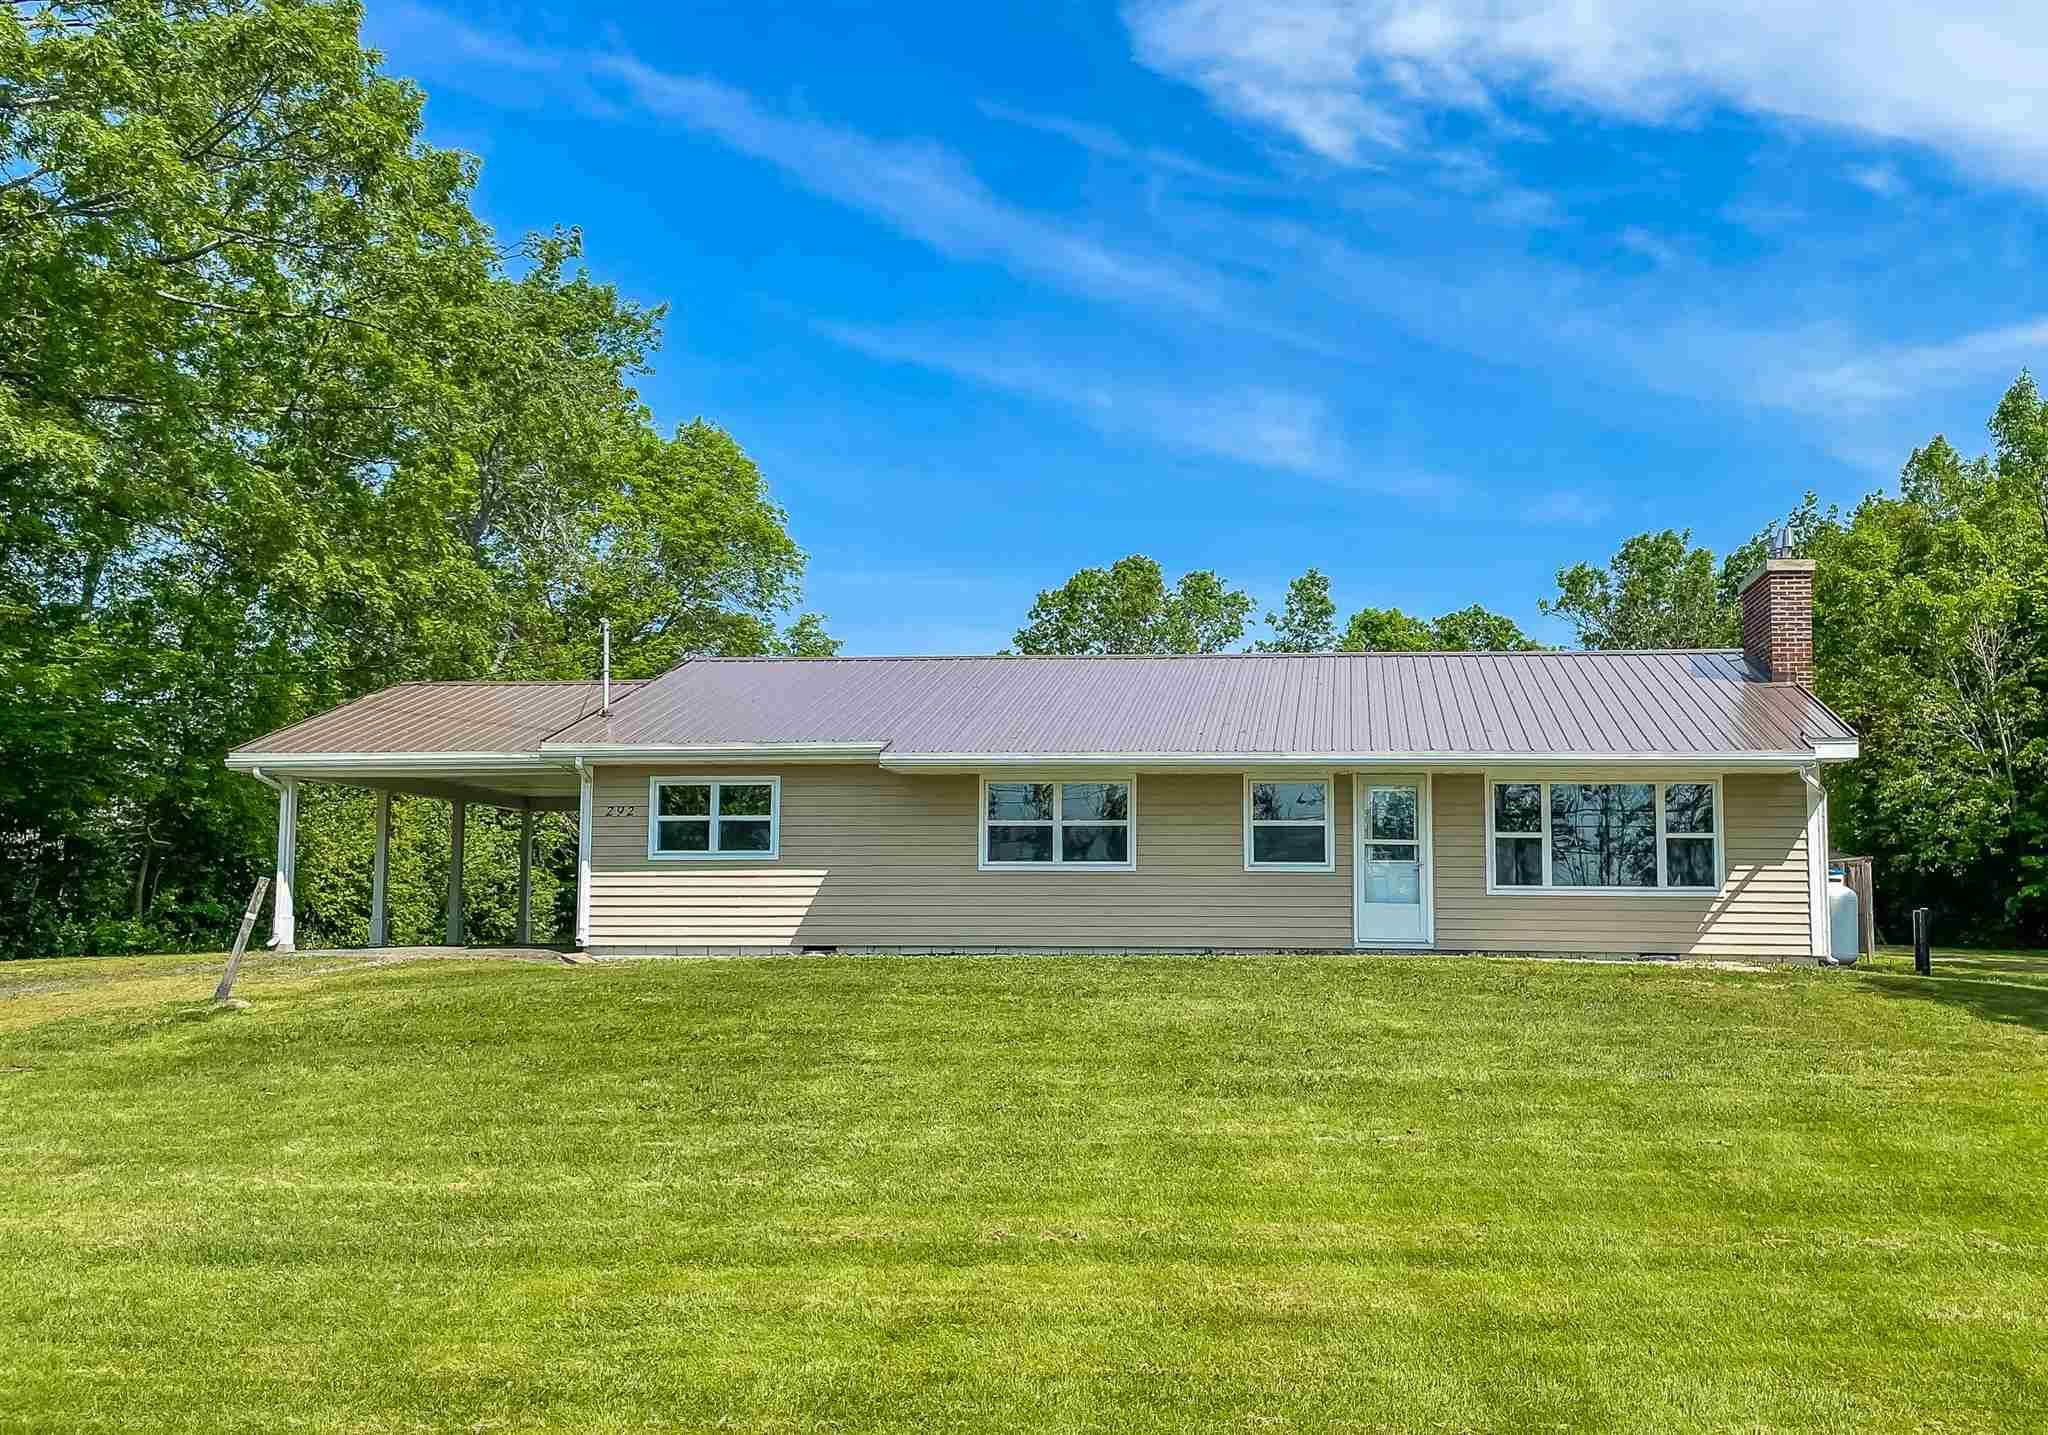 Main Photo: 292 Belcher Street in North Kentville: 404-Kings County Residential for sale (Annapolis Valley)  : MLS®# 202114447